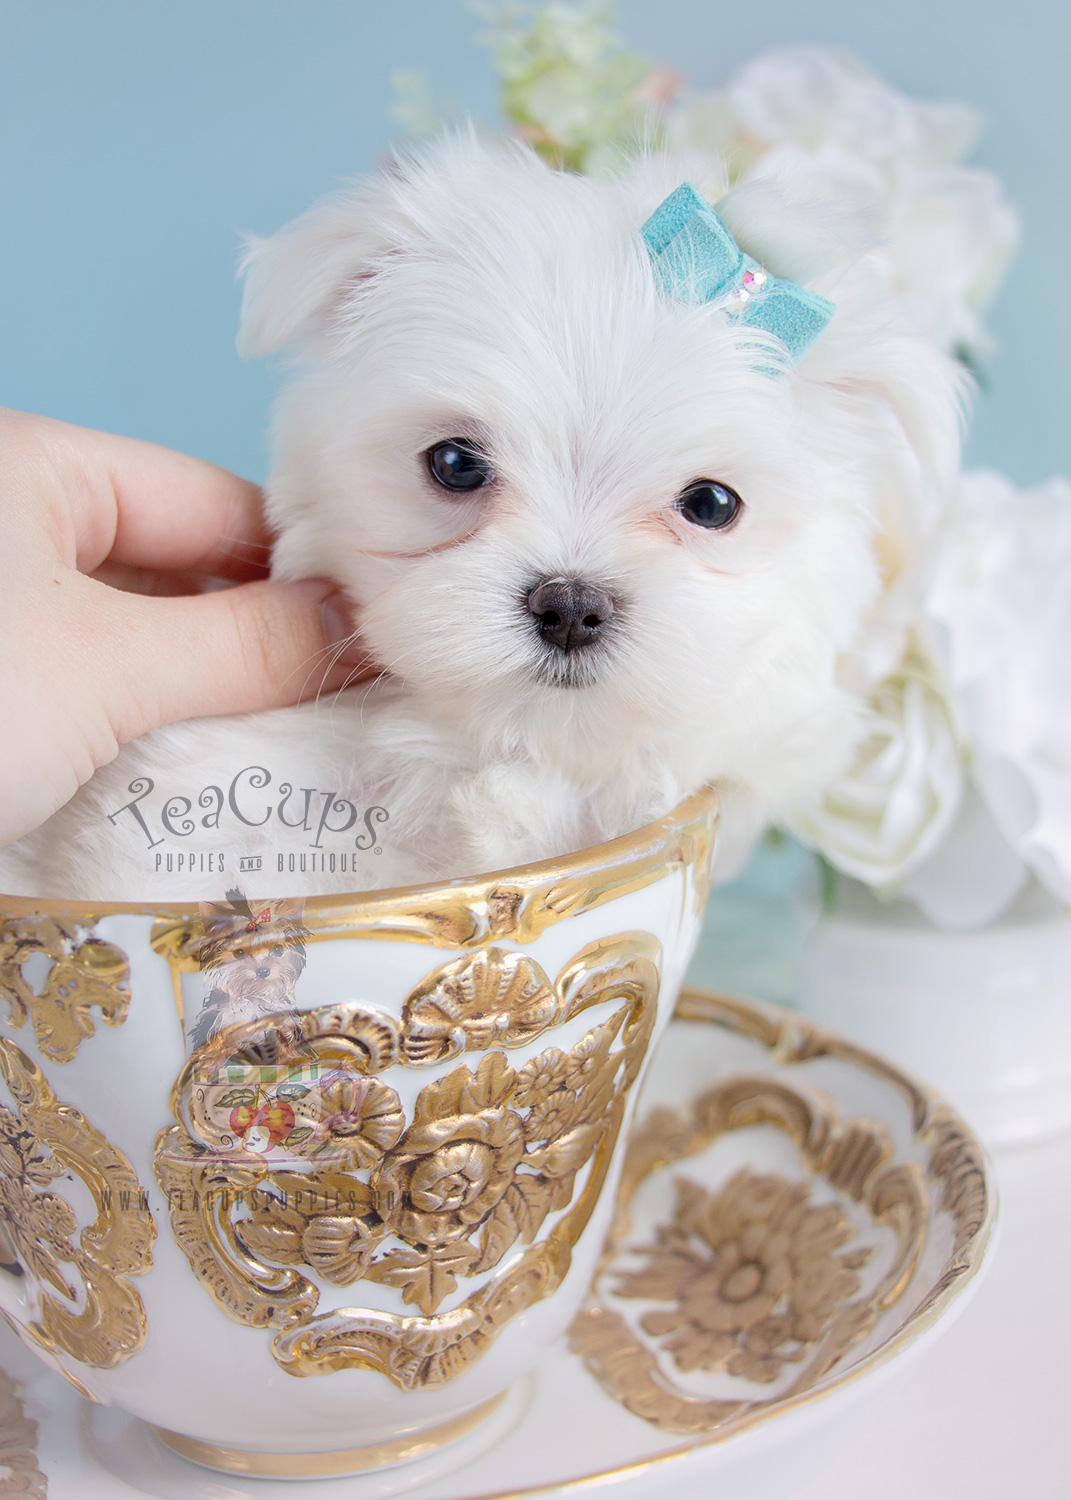 Puppy For Sale #289 Teacup Puppies Maltese